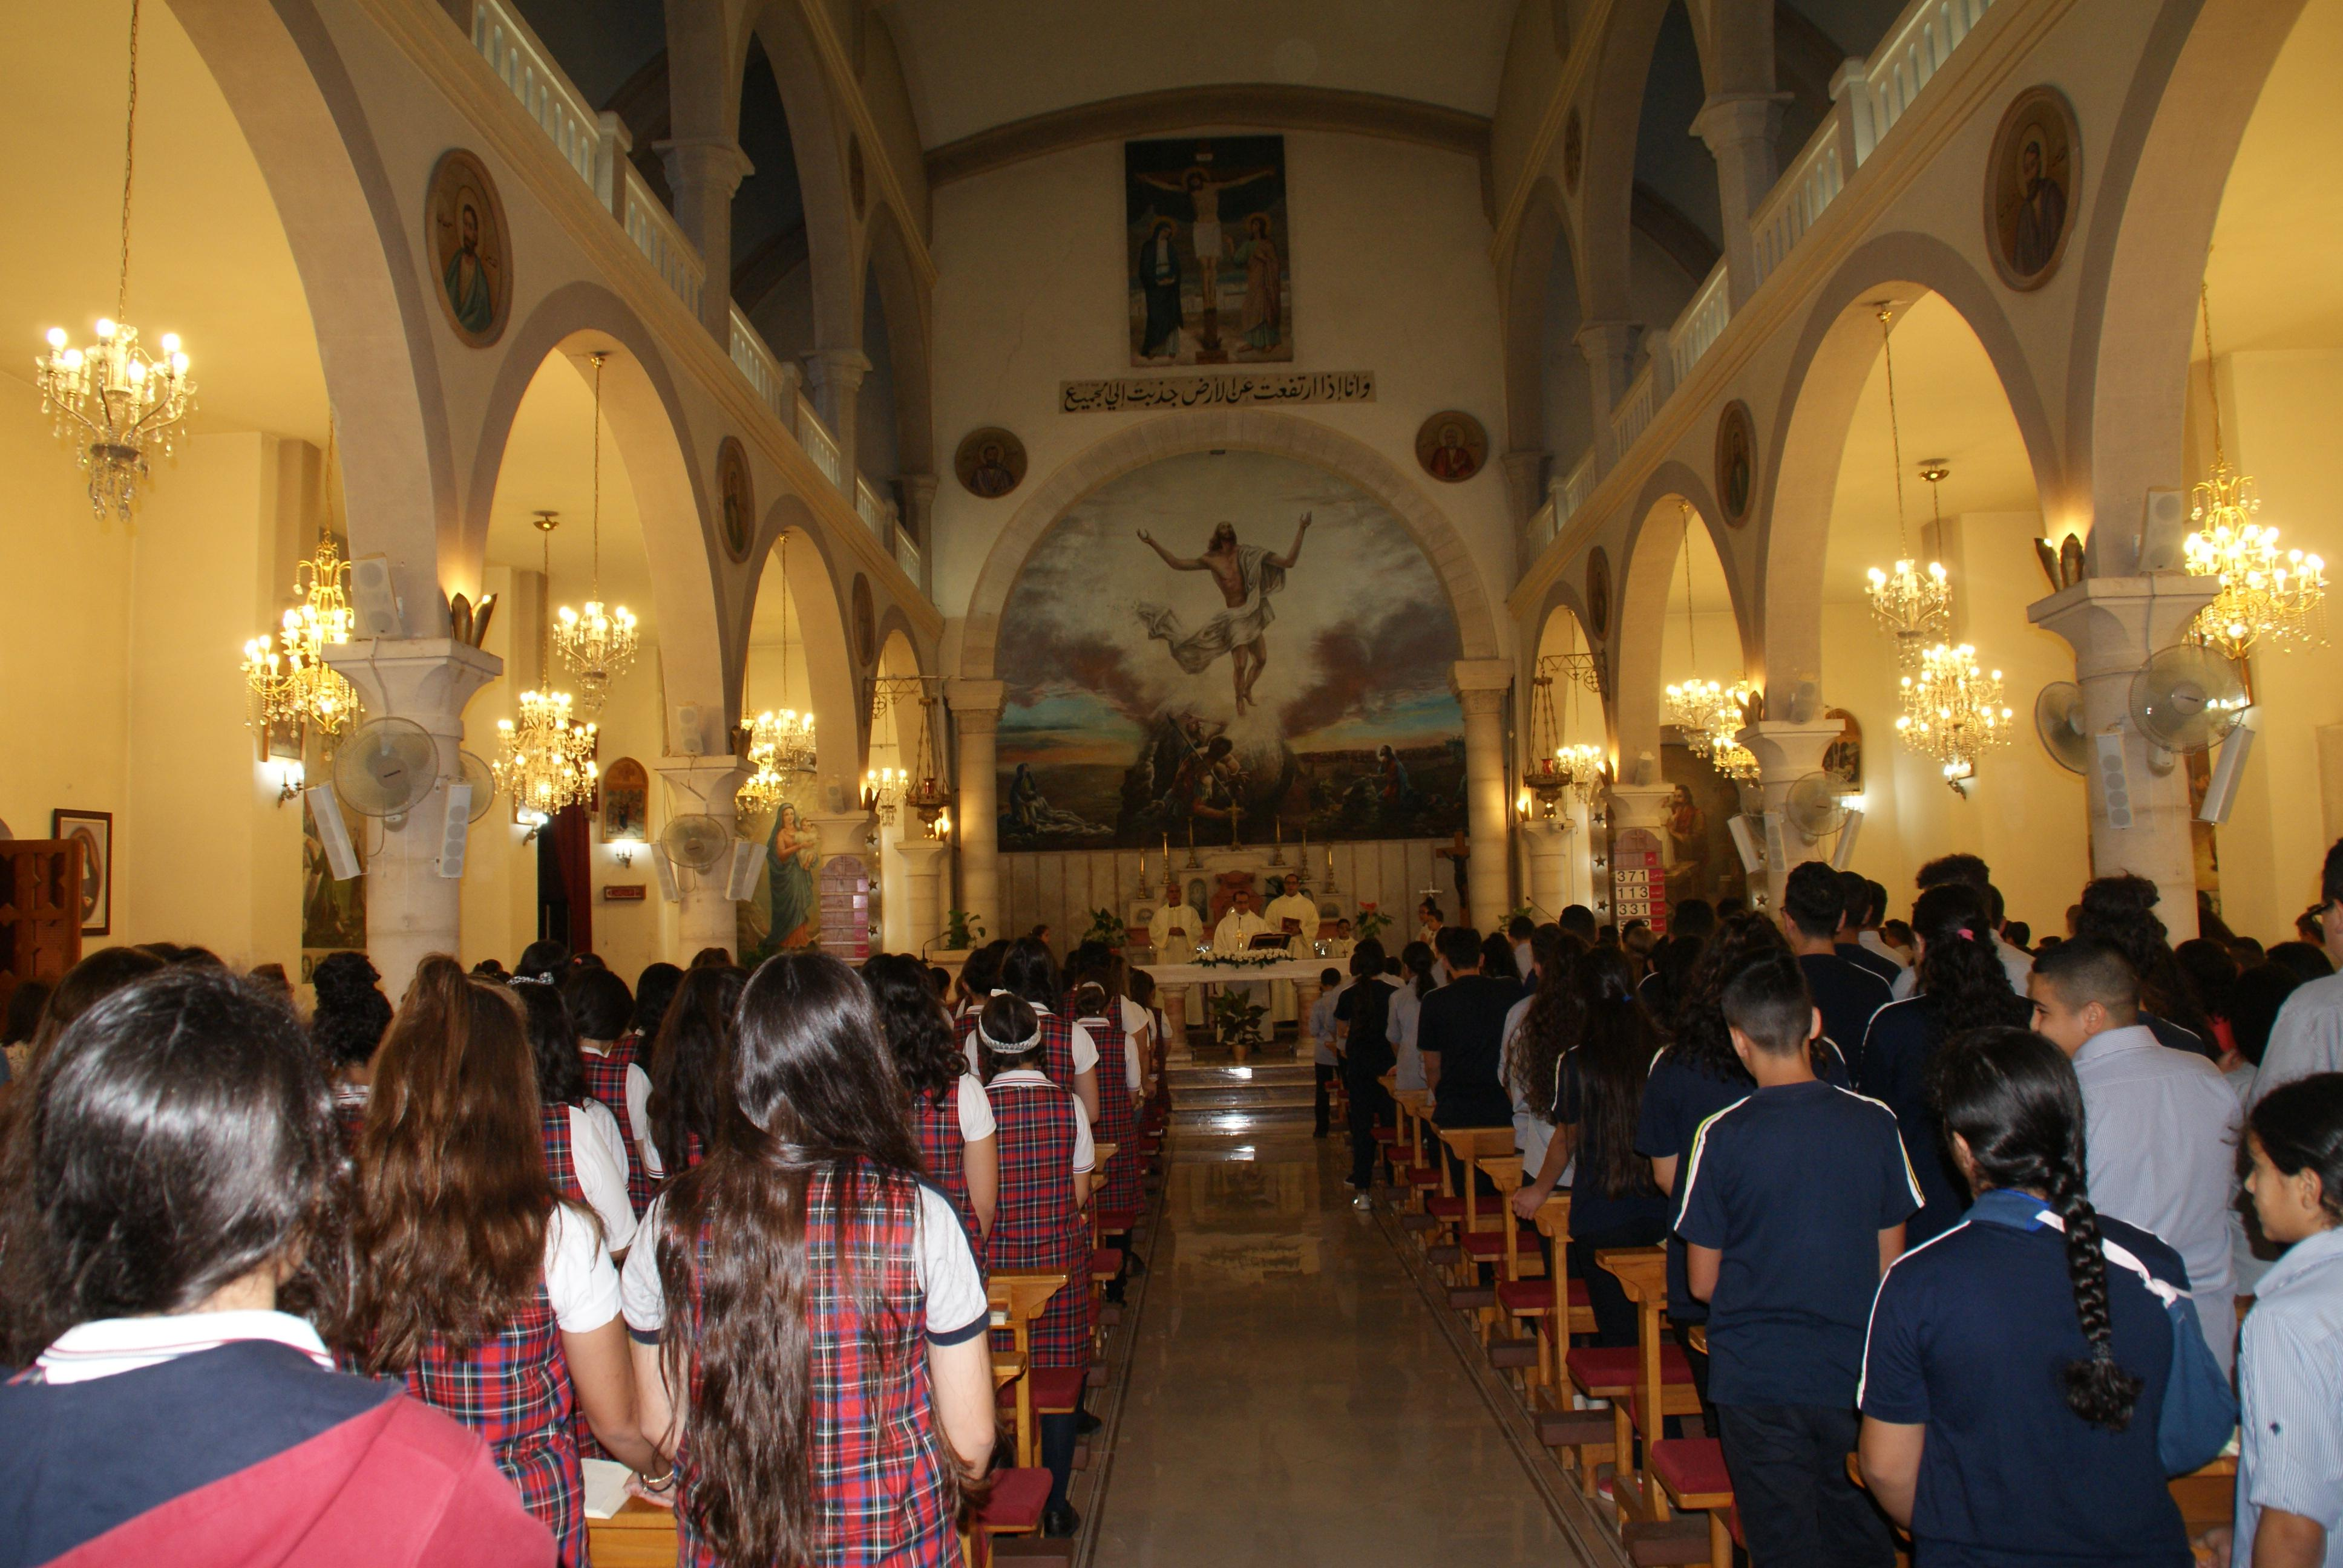 Ramallah - the opening Mass for the new academic year in Ahliya College